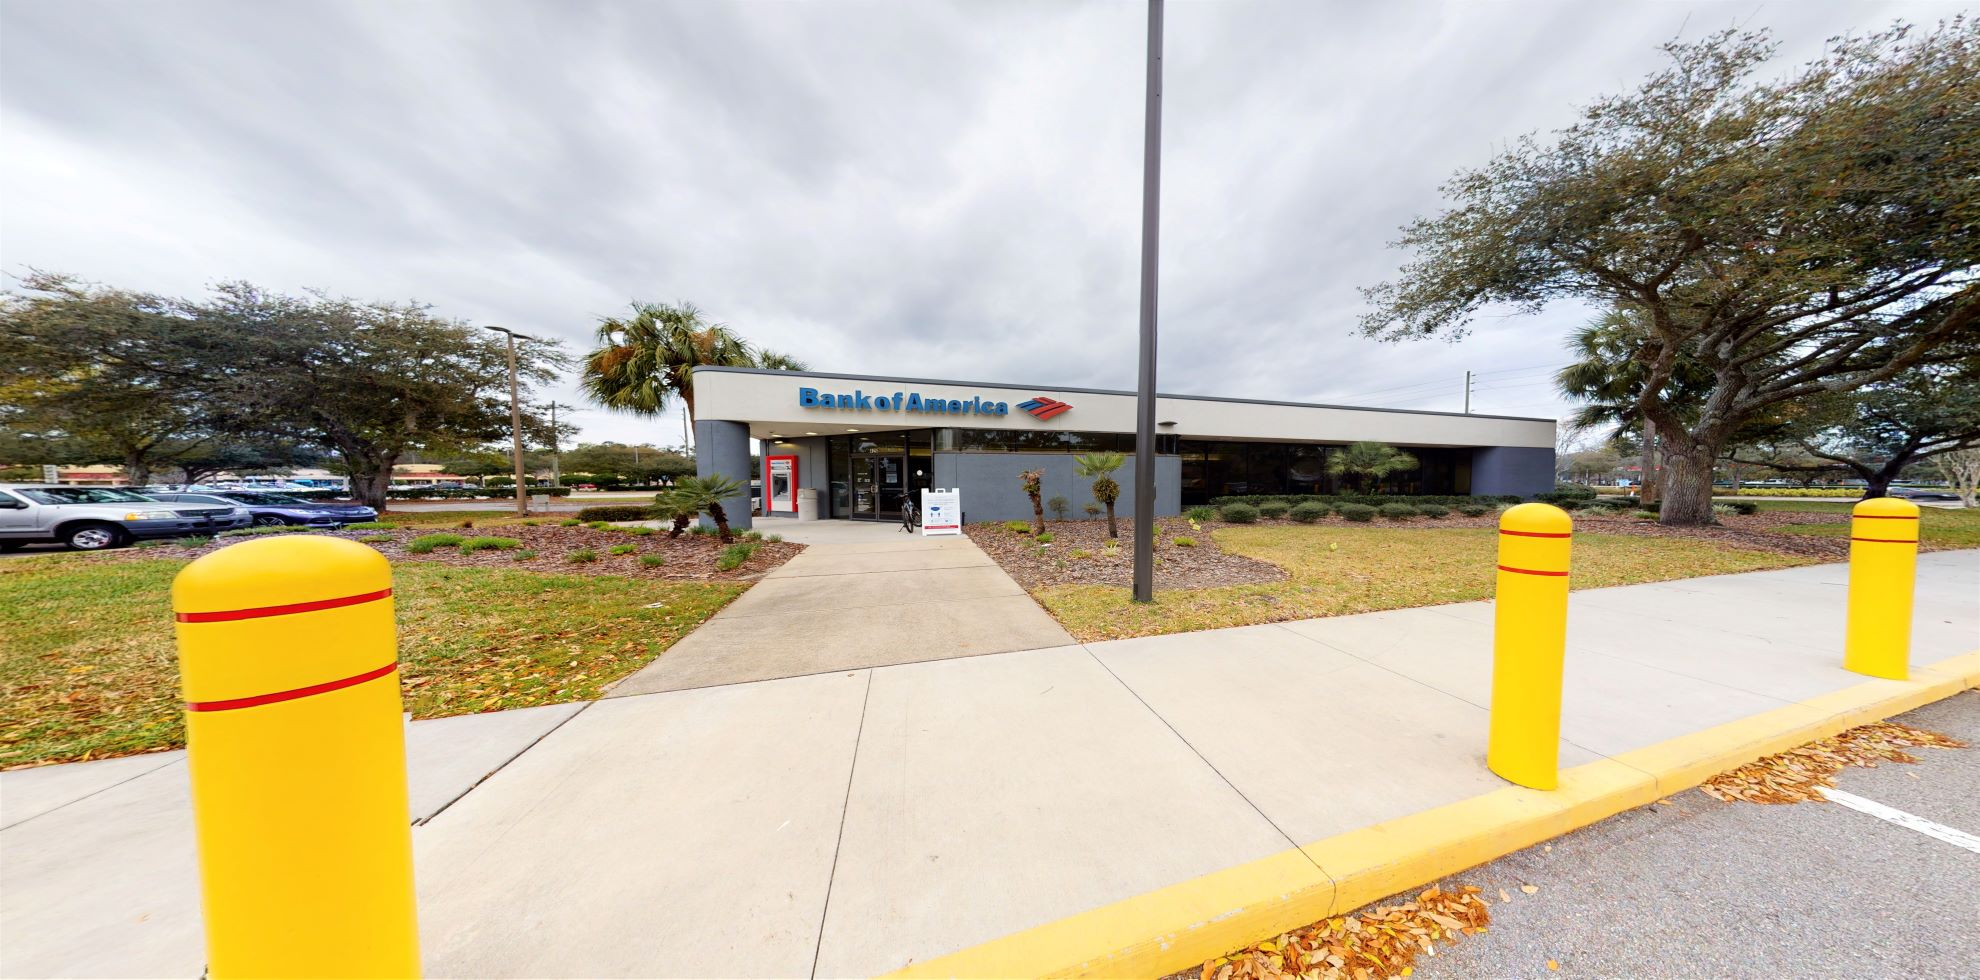 Bank of America financial center with drive-thru ATM   425 State Road 13, Jacksonville, FL 32259